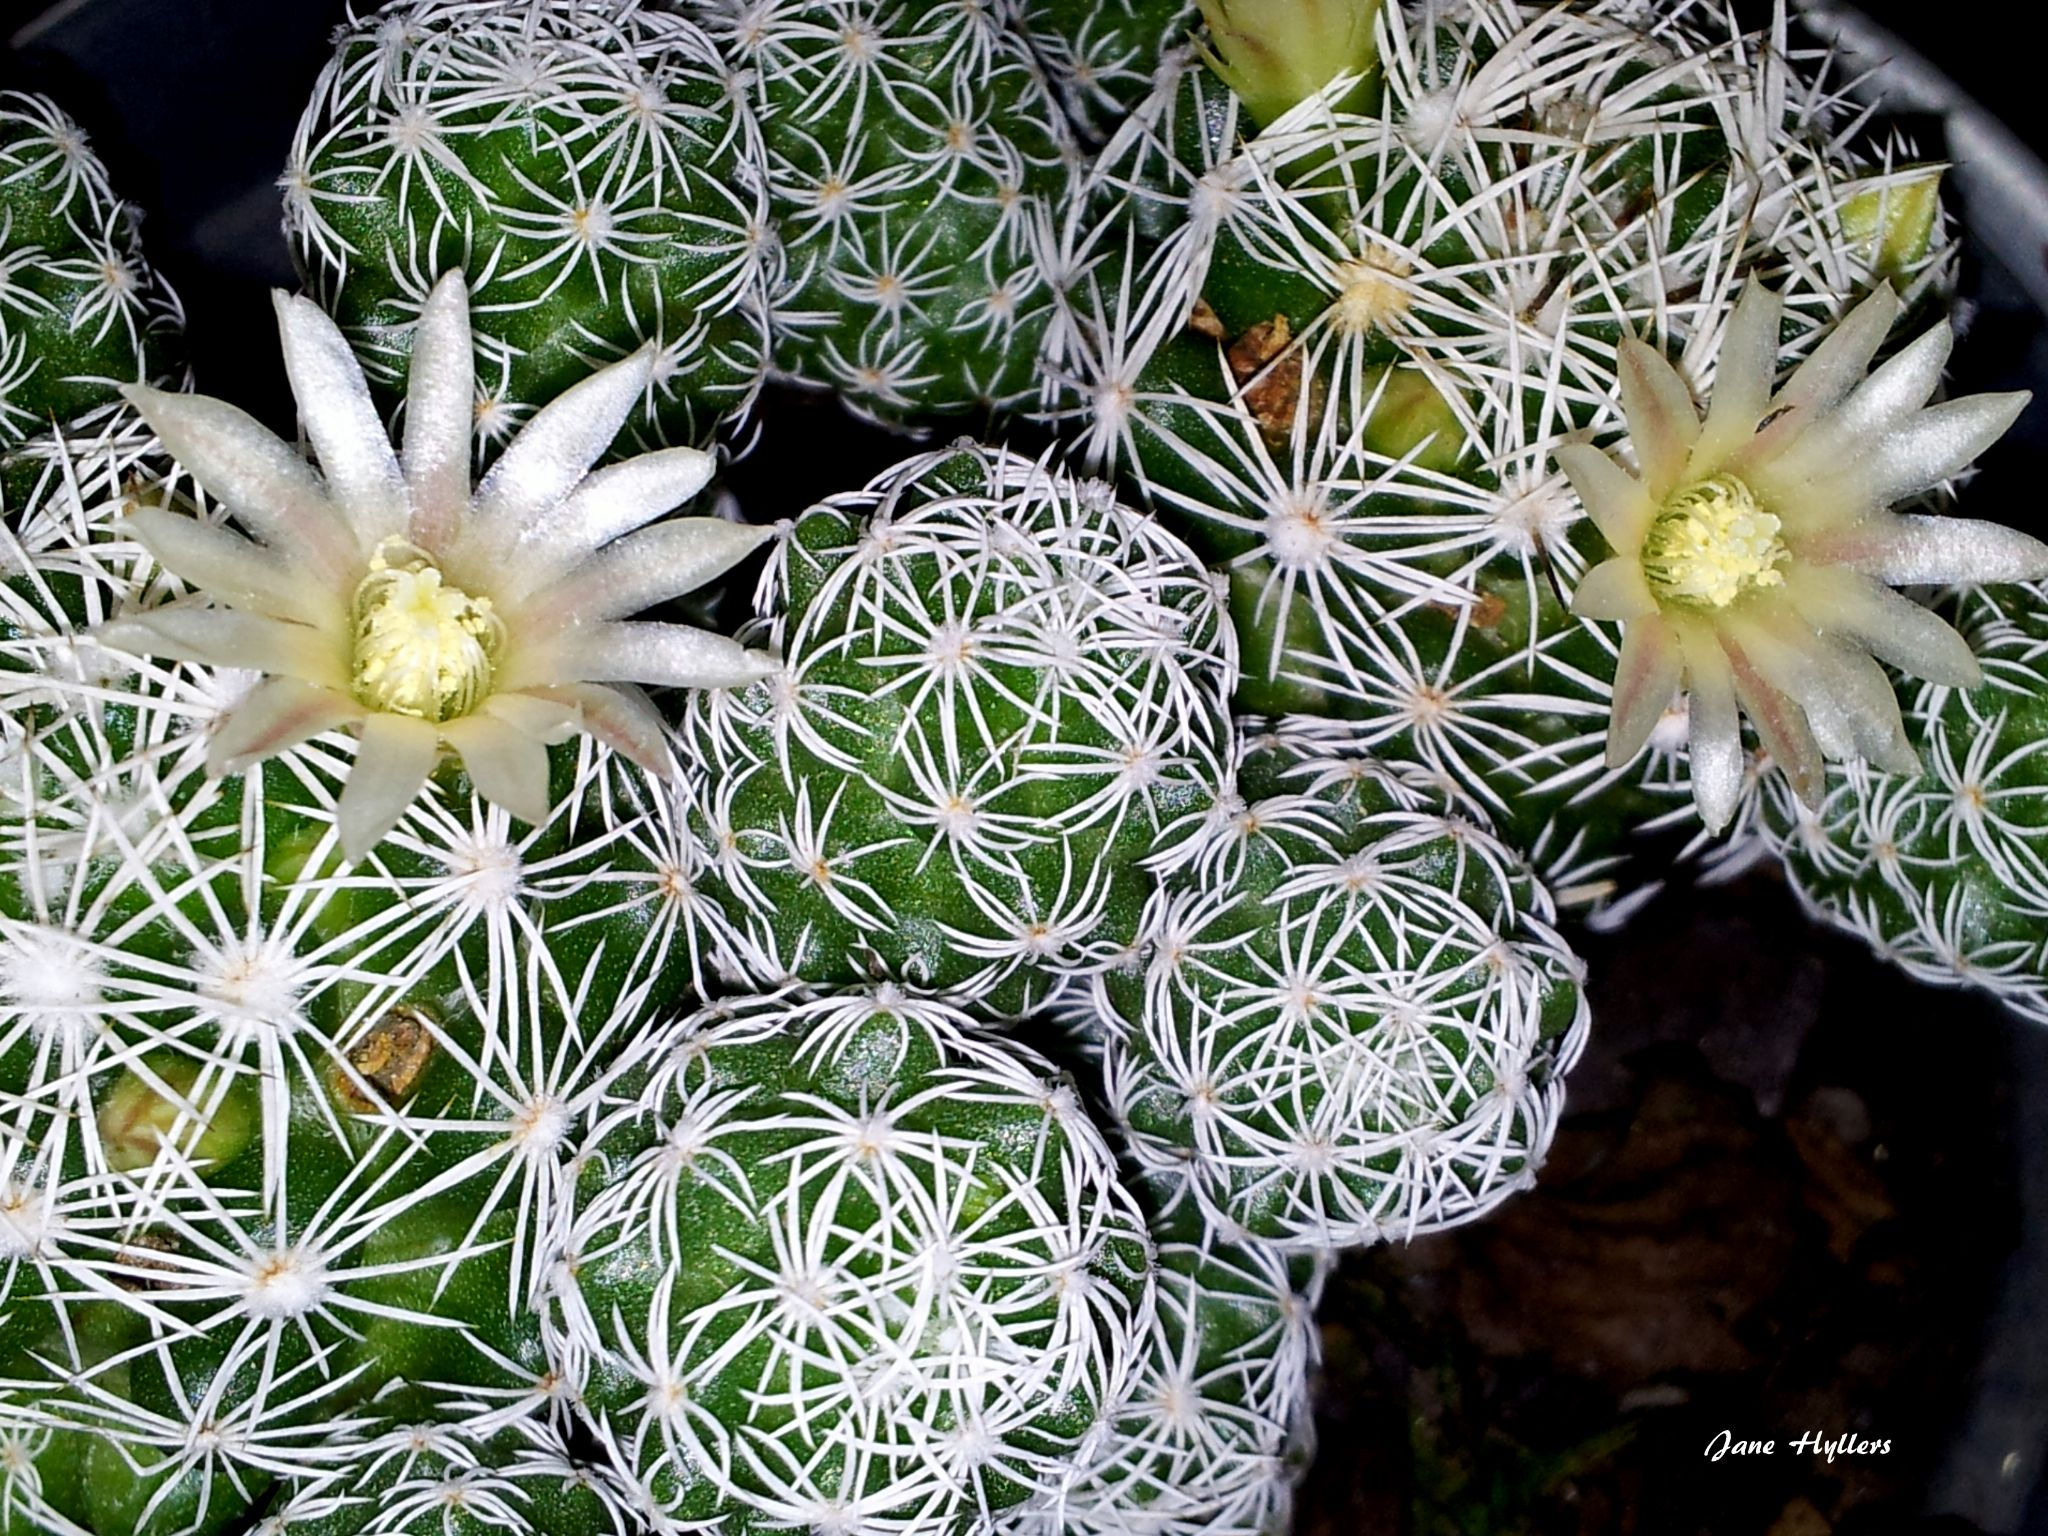 Cactos e flores by Jane Hyllers